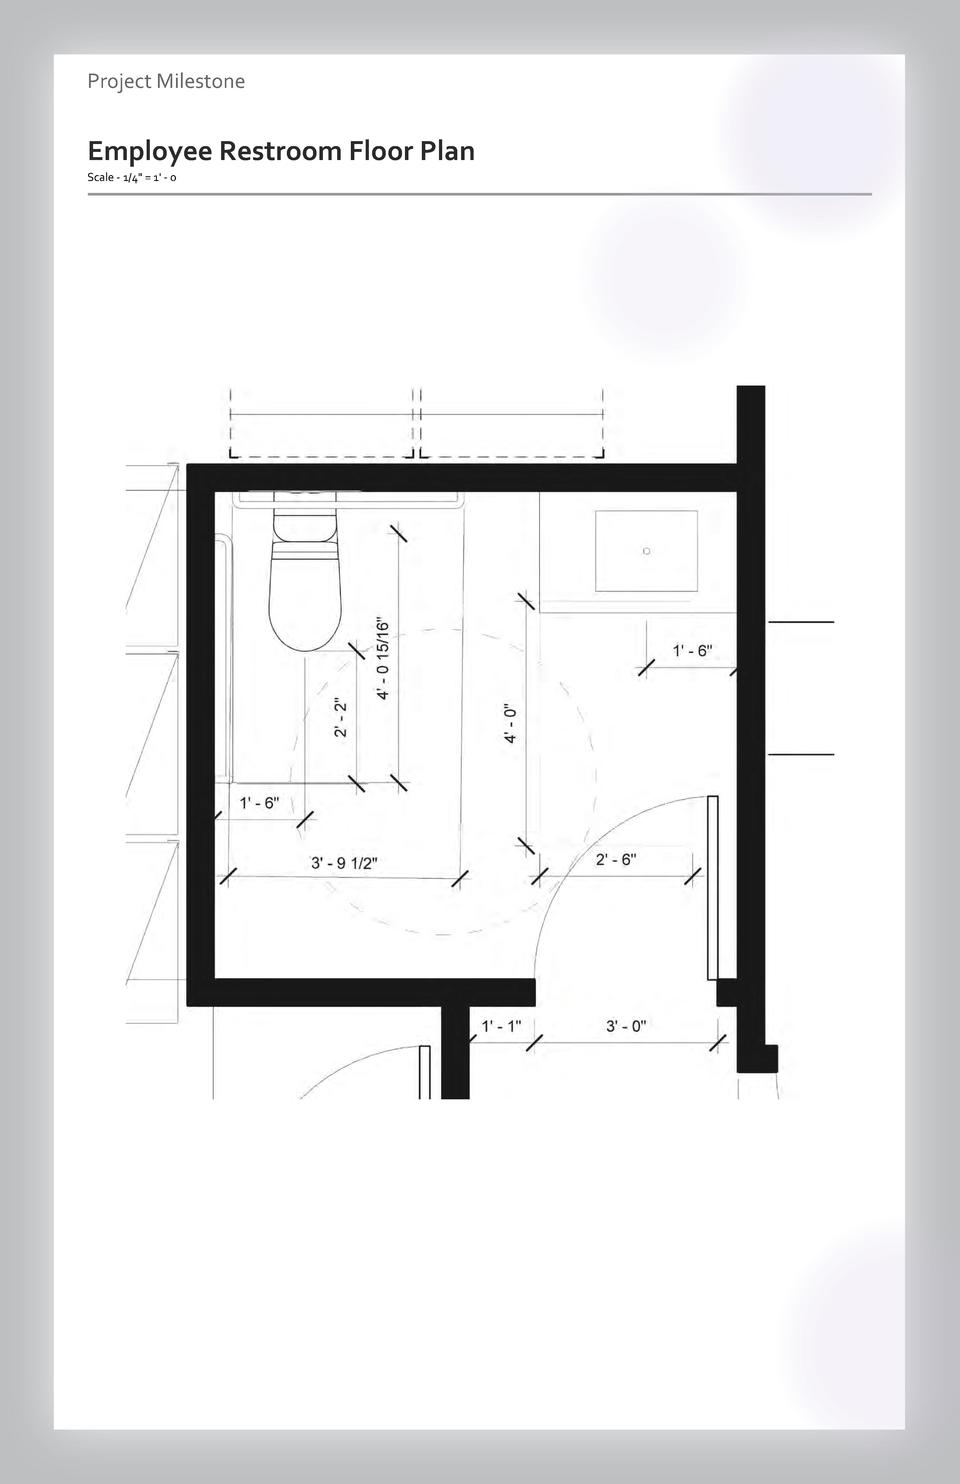 Case study Project Milestone - Aesthetics  Commercial Employee Restroom Space Wayfinding Floor Plan Westfield Scale - 1 4 ...